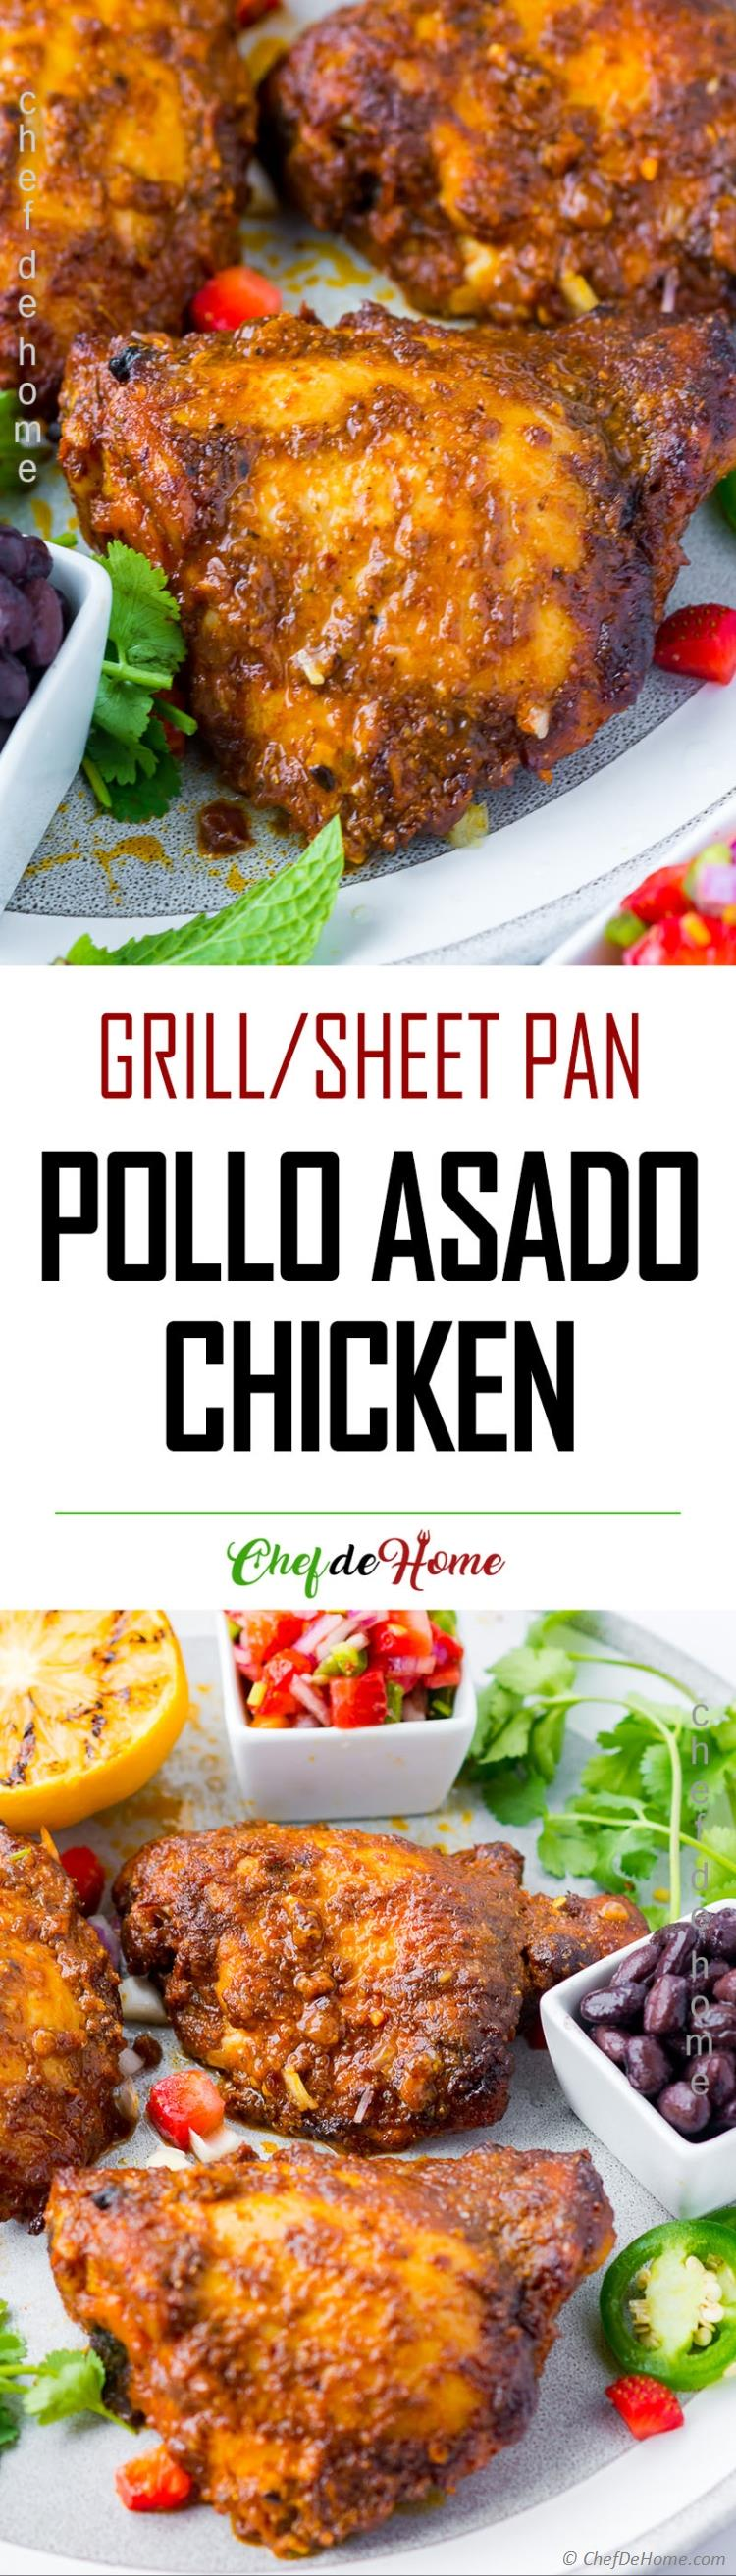 Mexican Grilled Chicken Pollo Asado